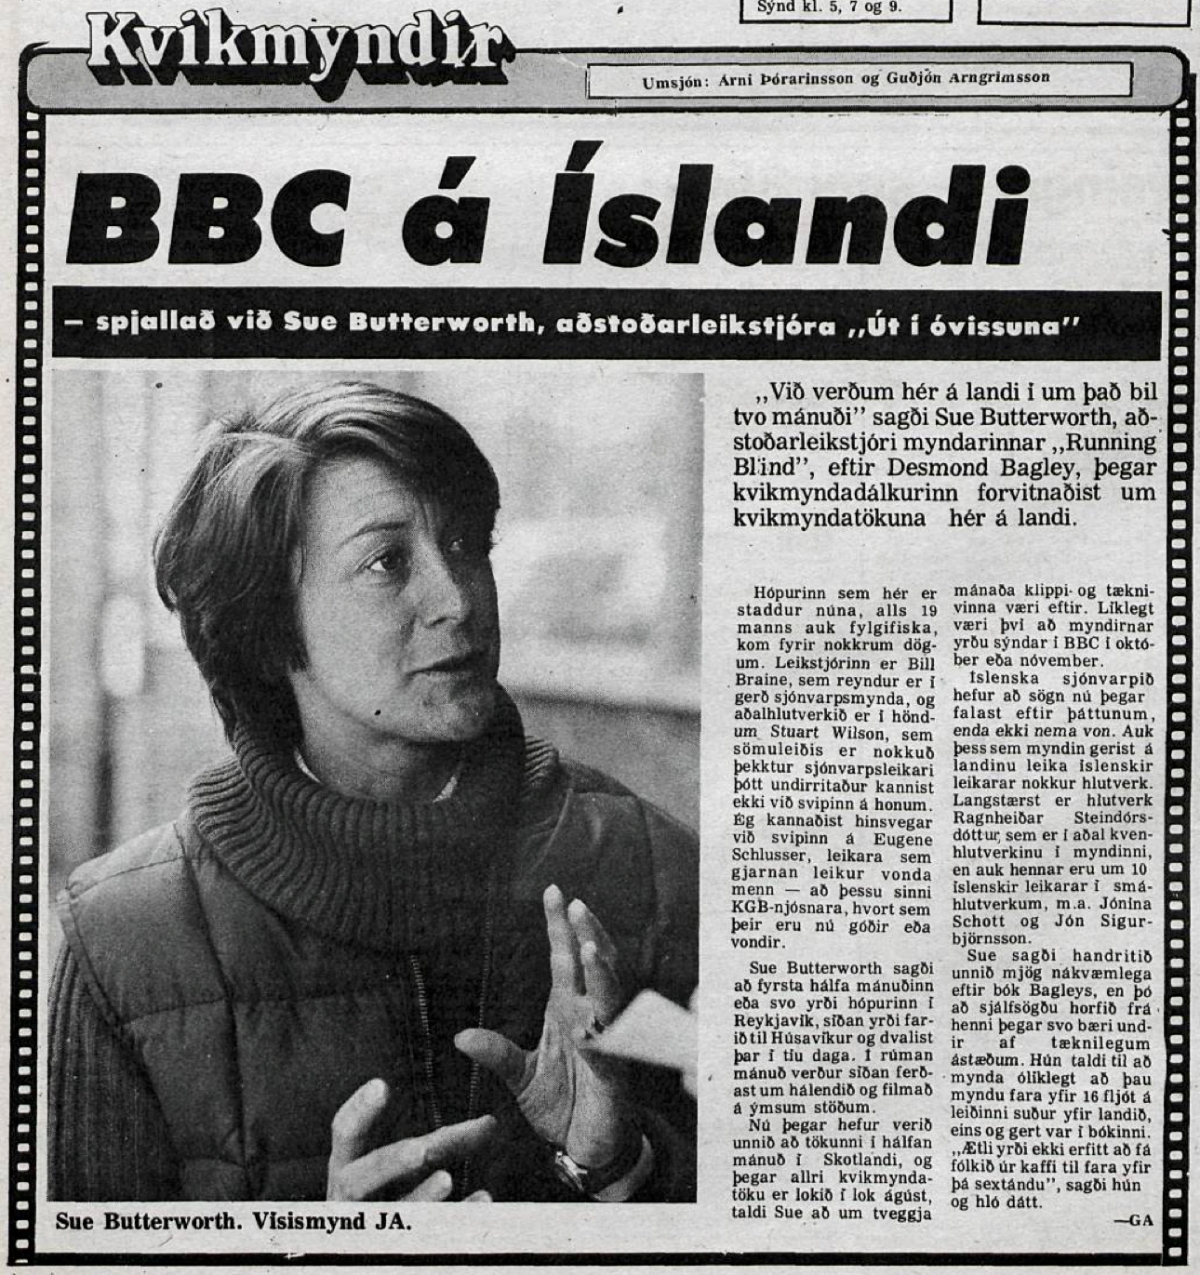 Desmond Bagley's Running Blind Icelandic media article from Visir 9th June 1978.